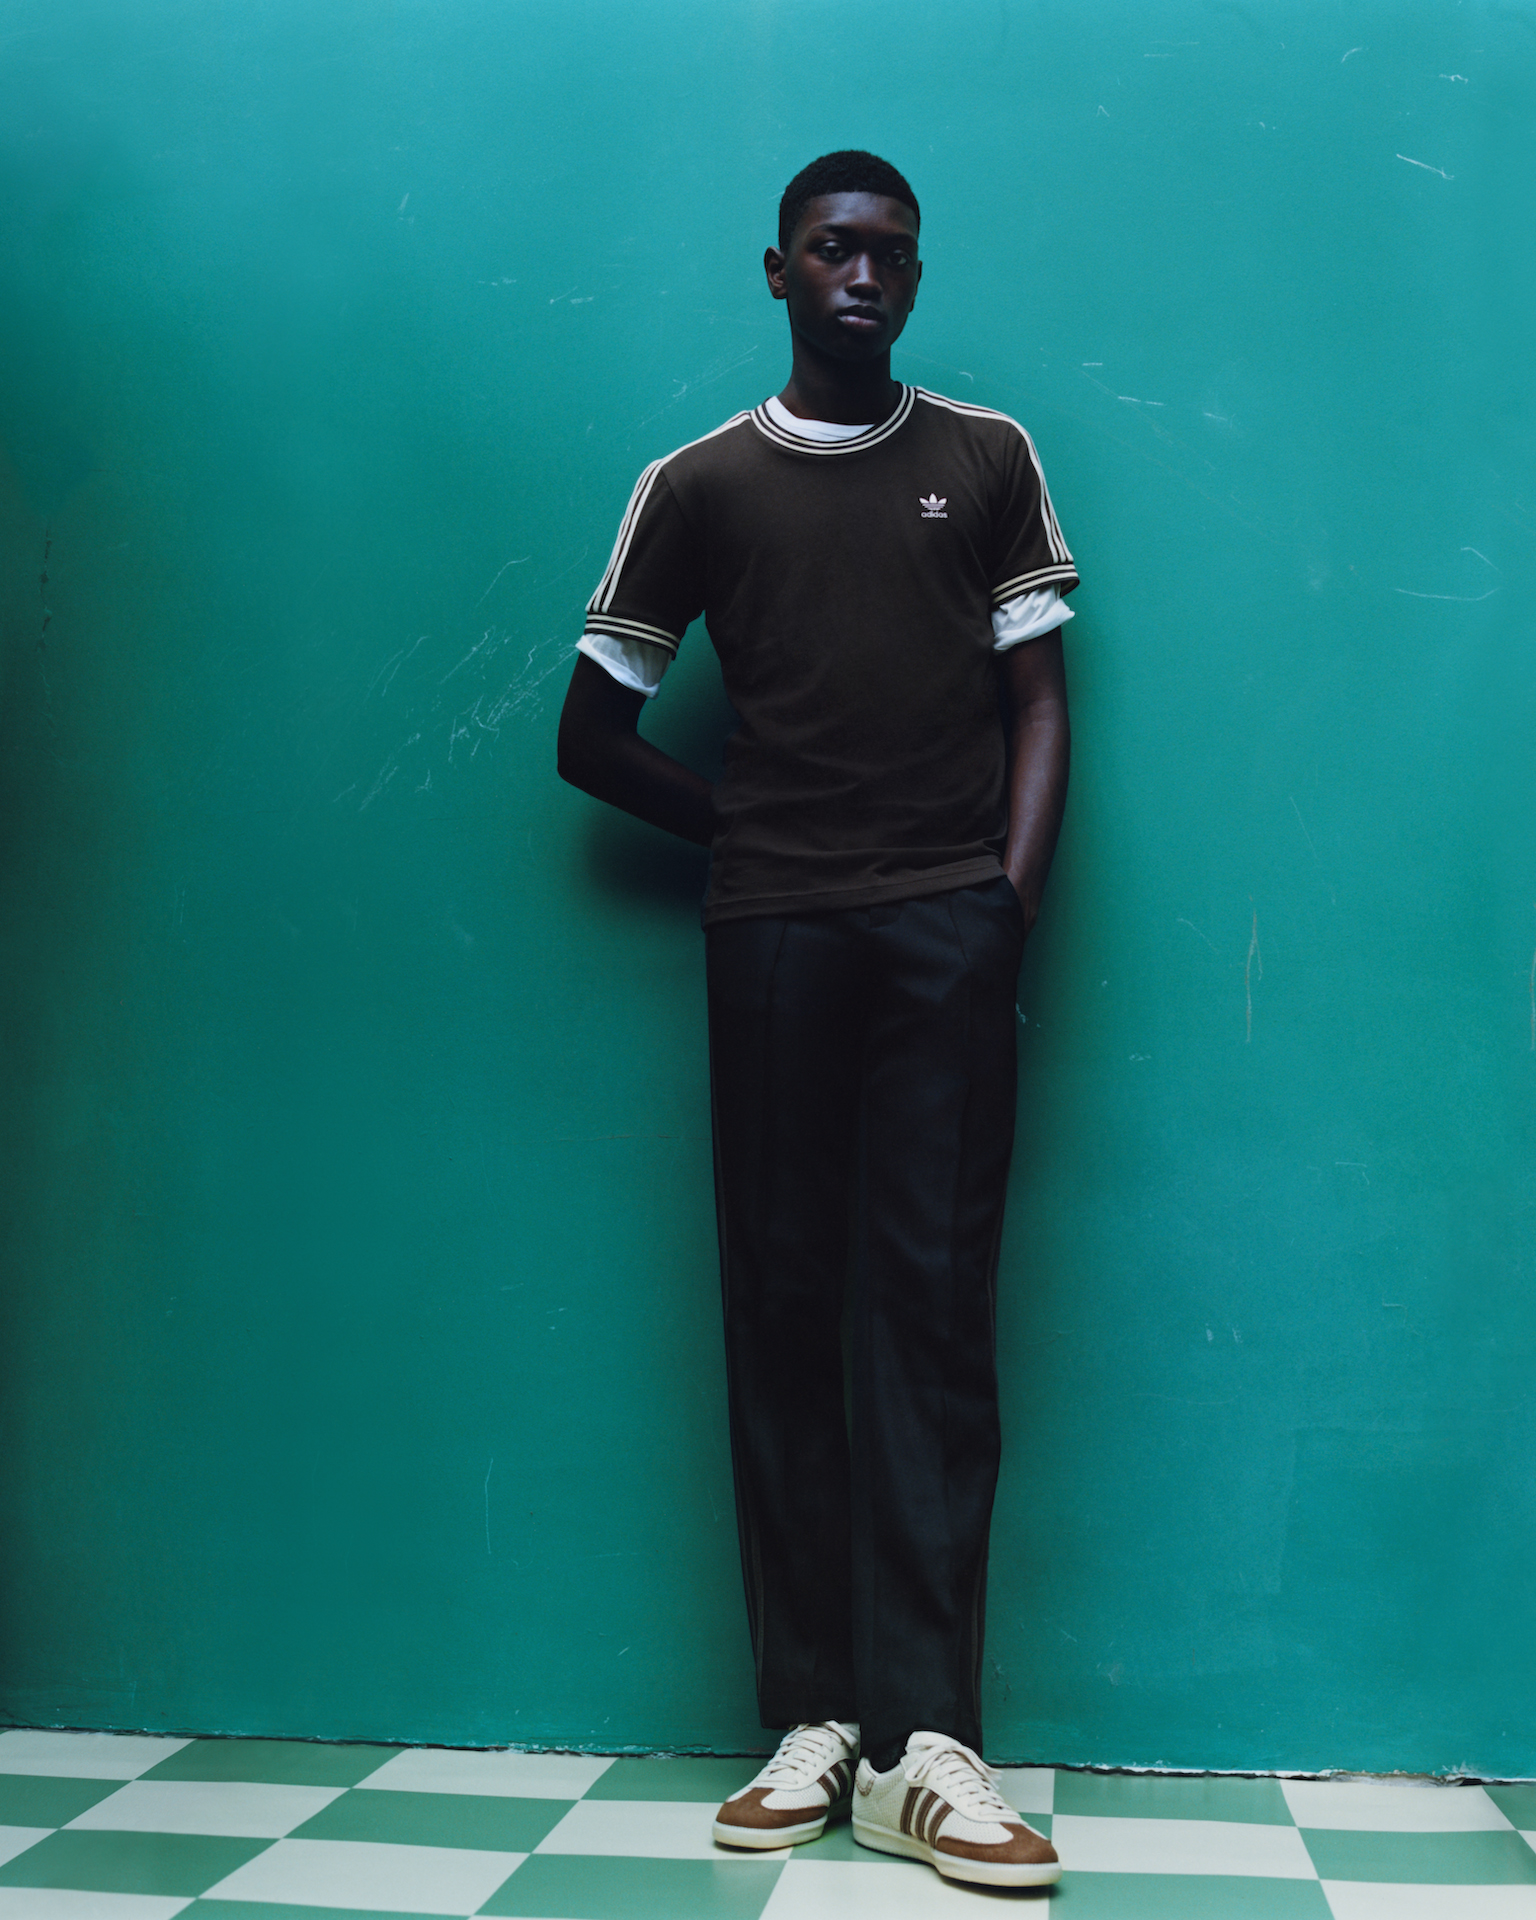 adidas Originals and Wales Bonner Launch Collaborative Collection